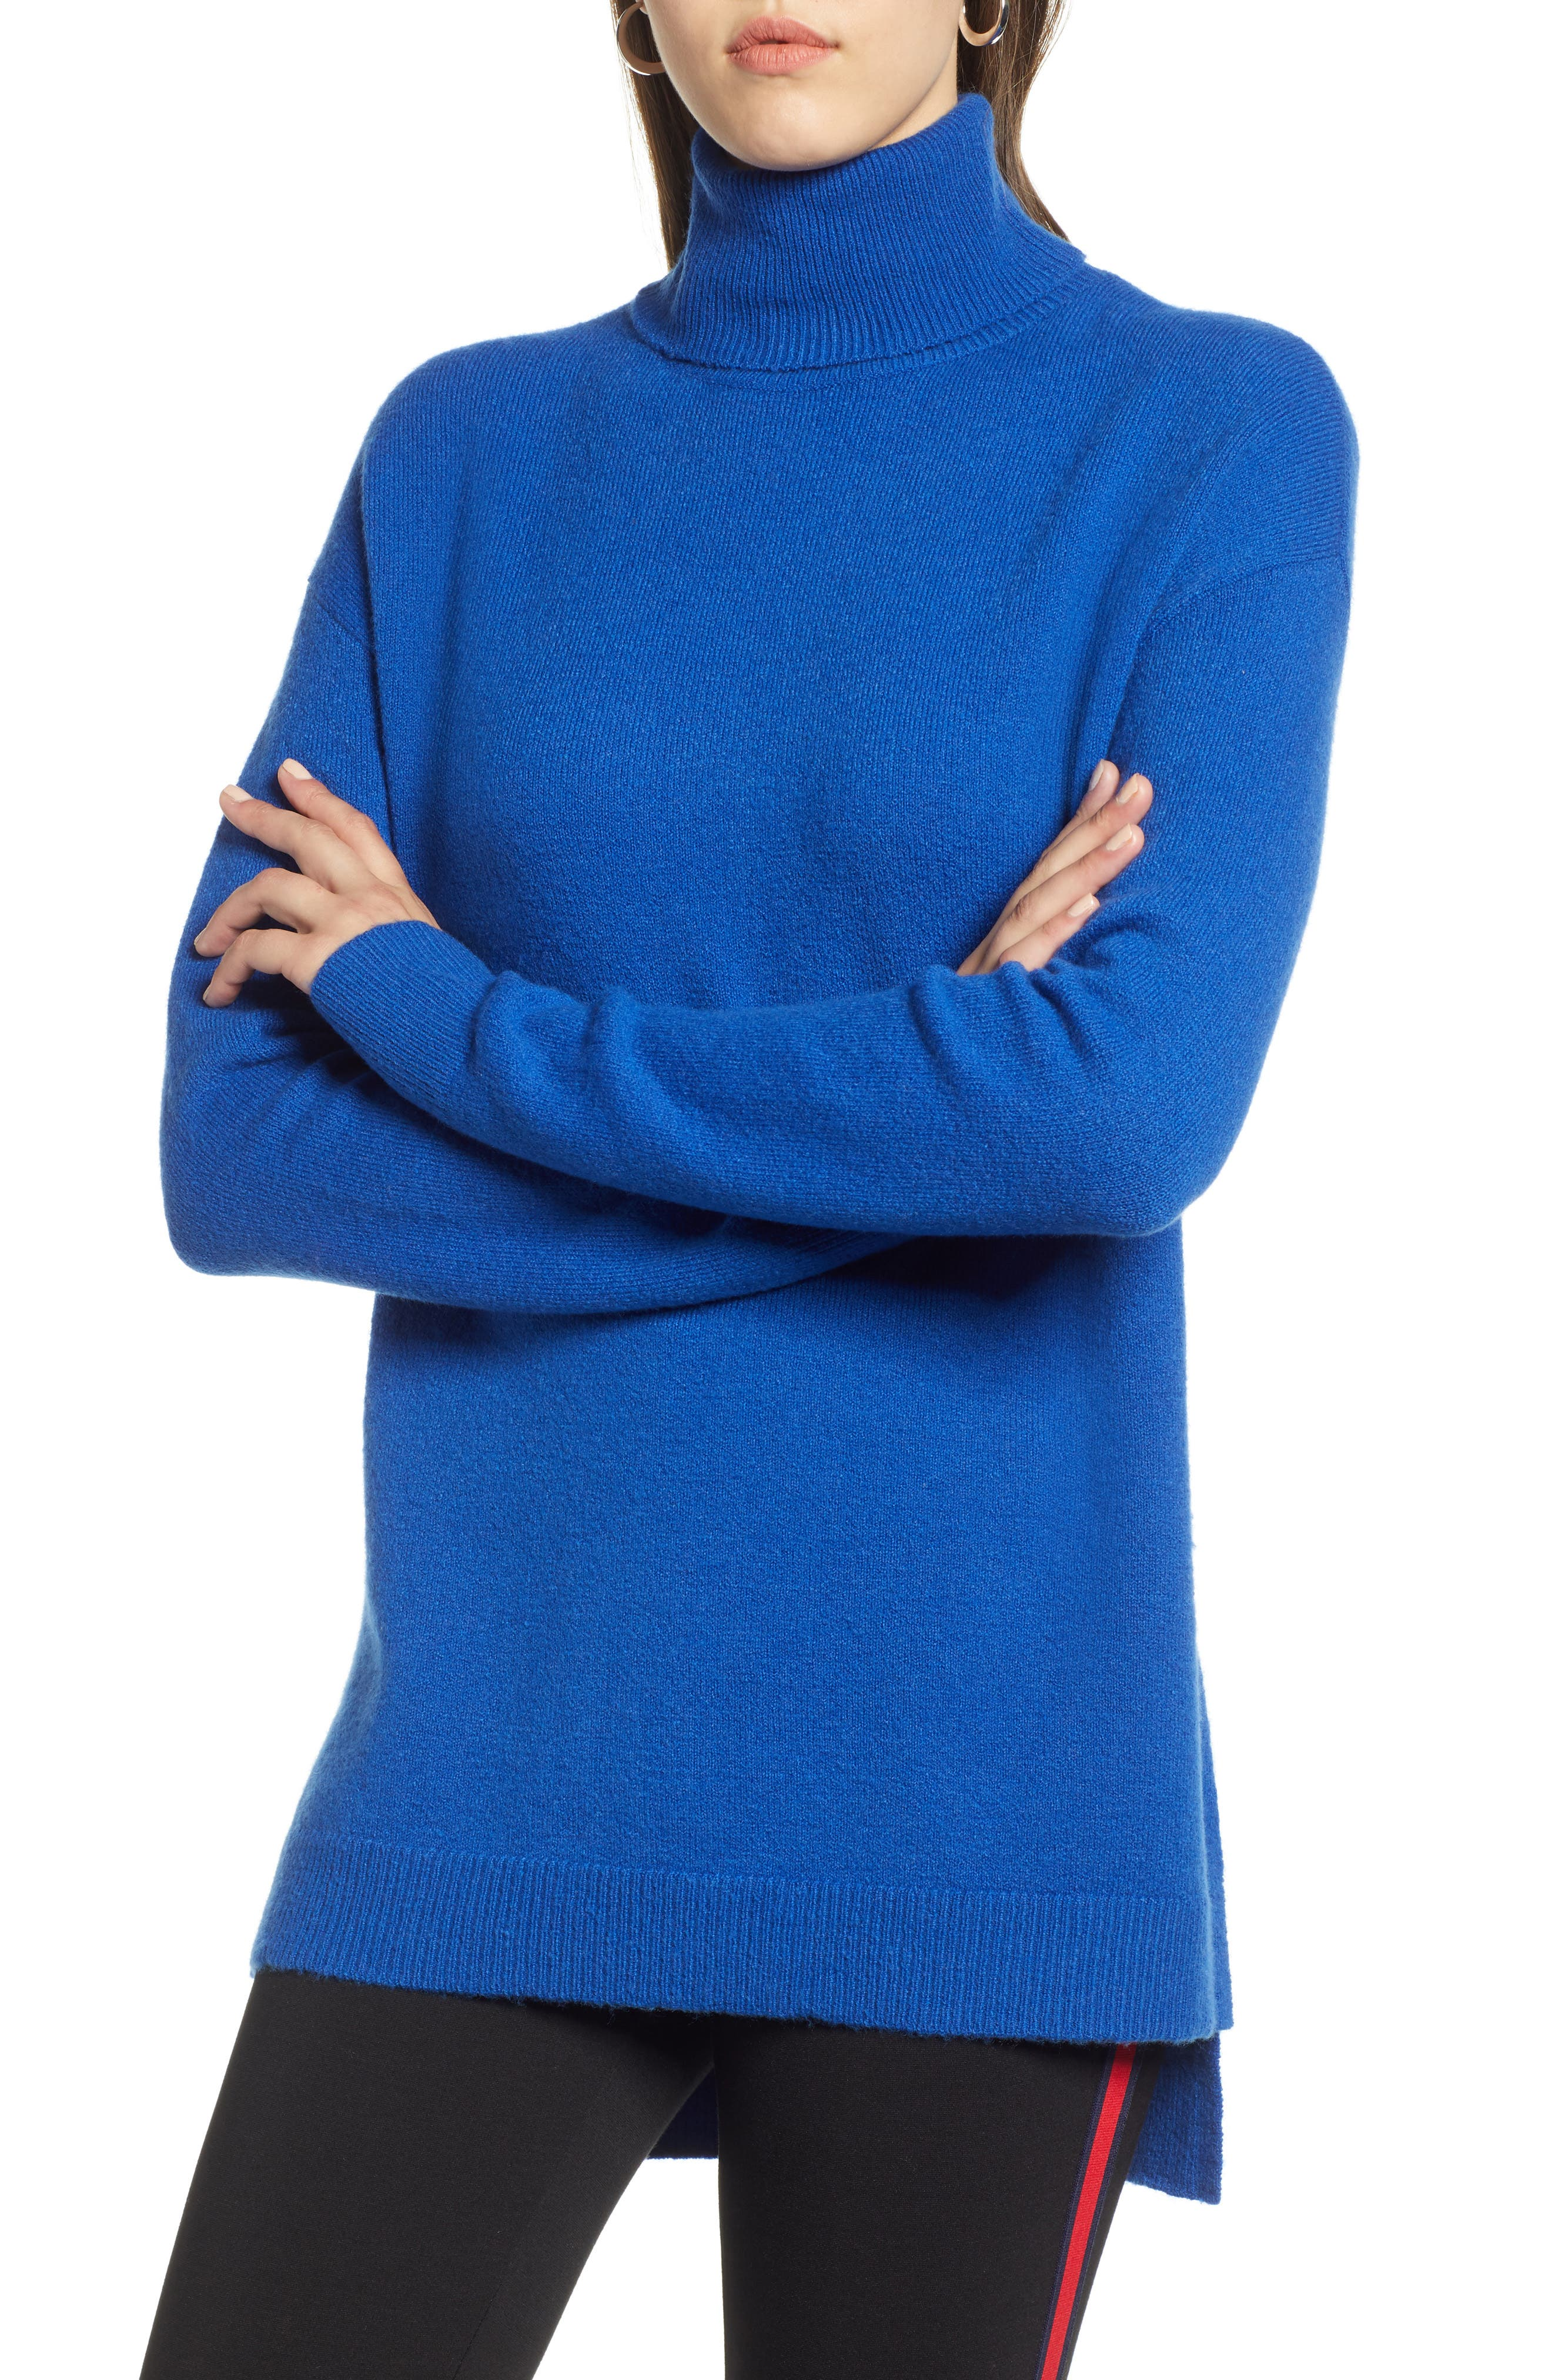 Turtleneck Wool Blend Tunic Sweater,                             Main thumbnail 1, color,                             401